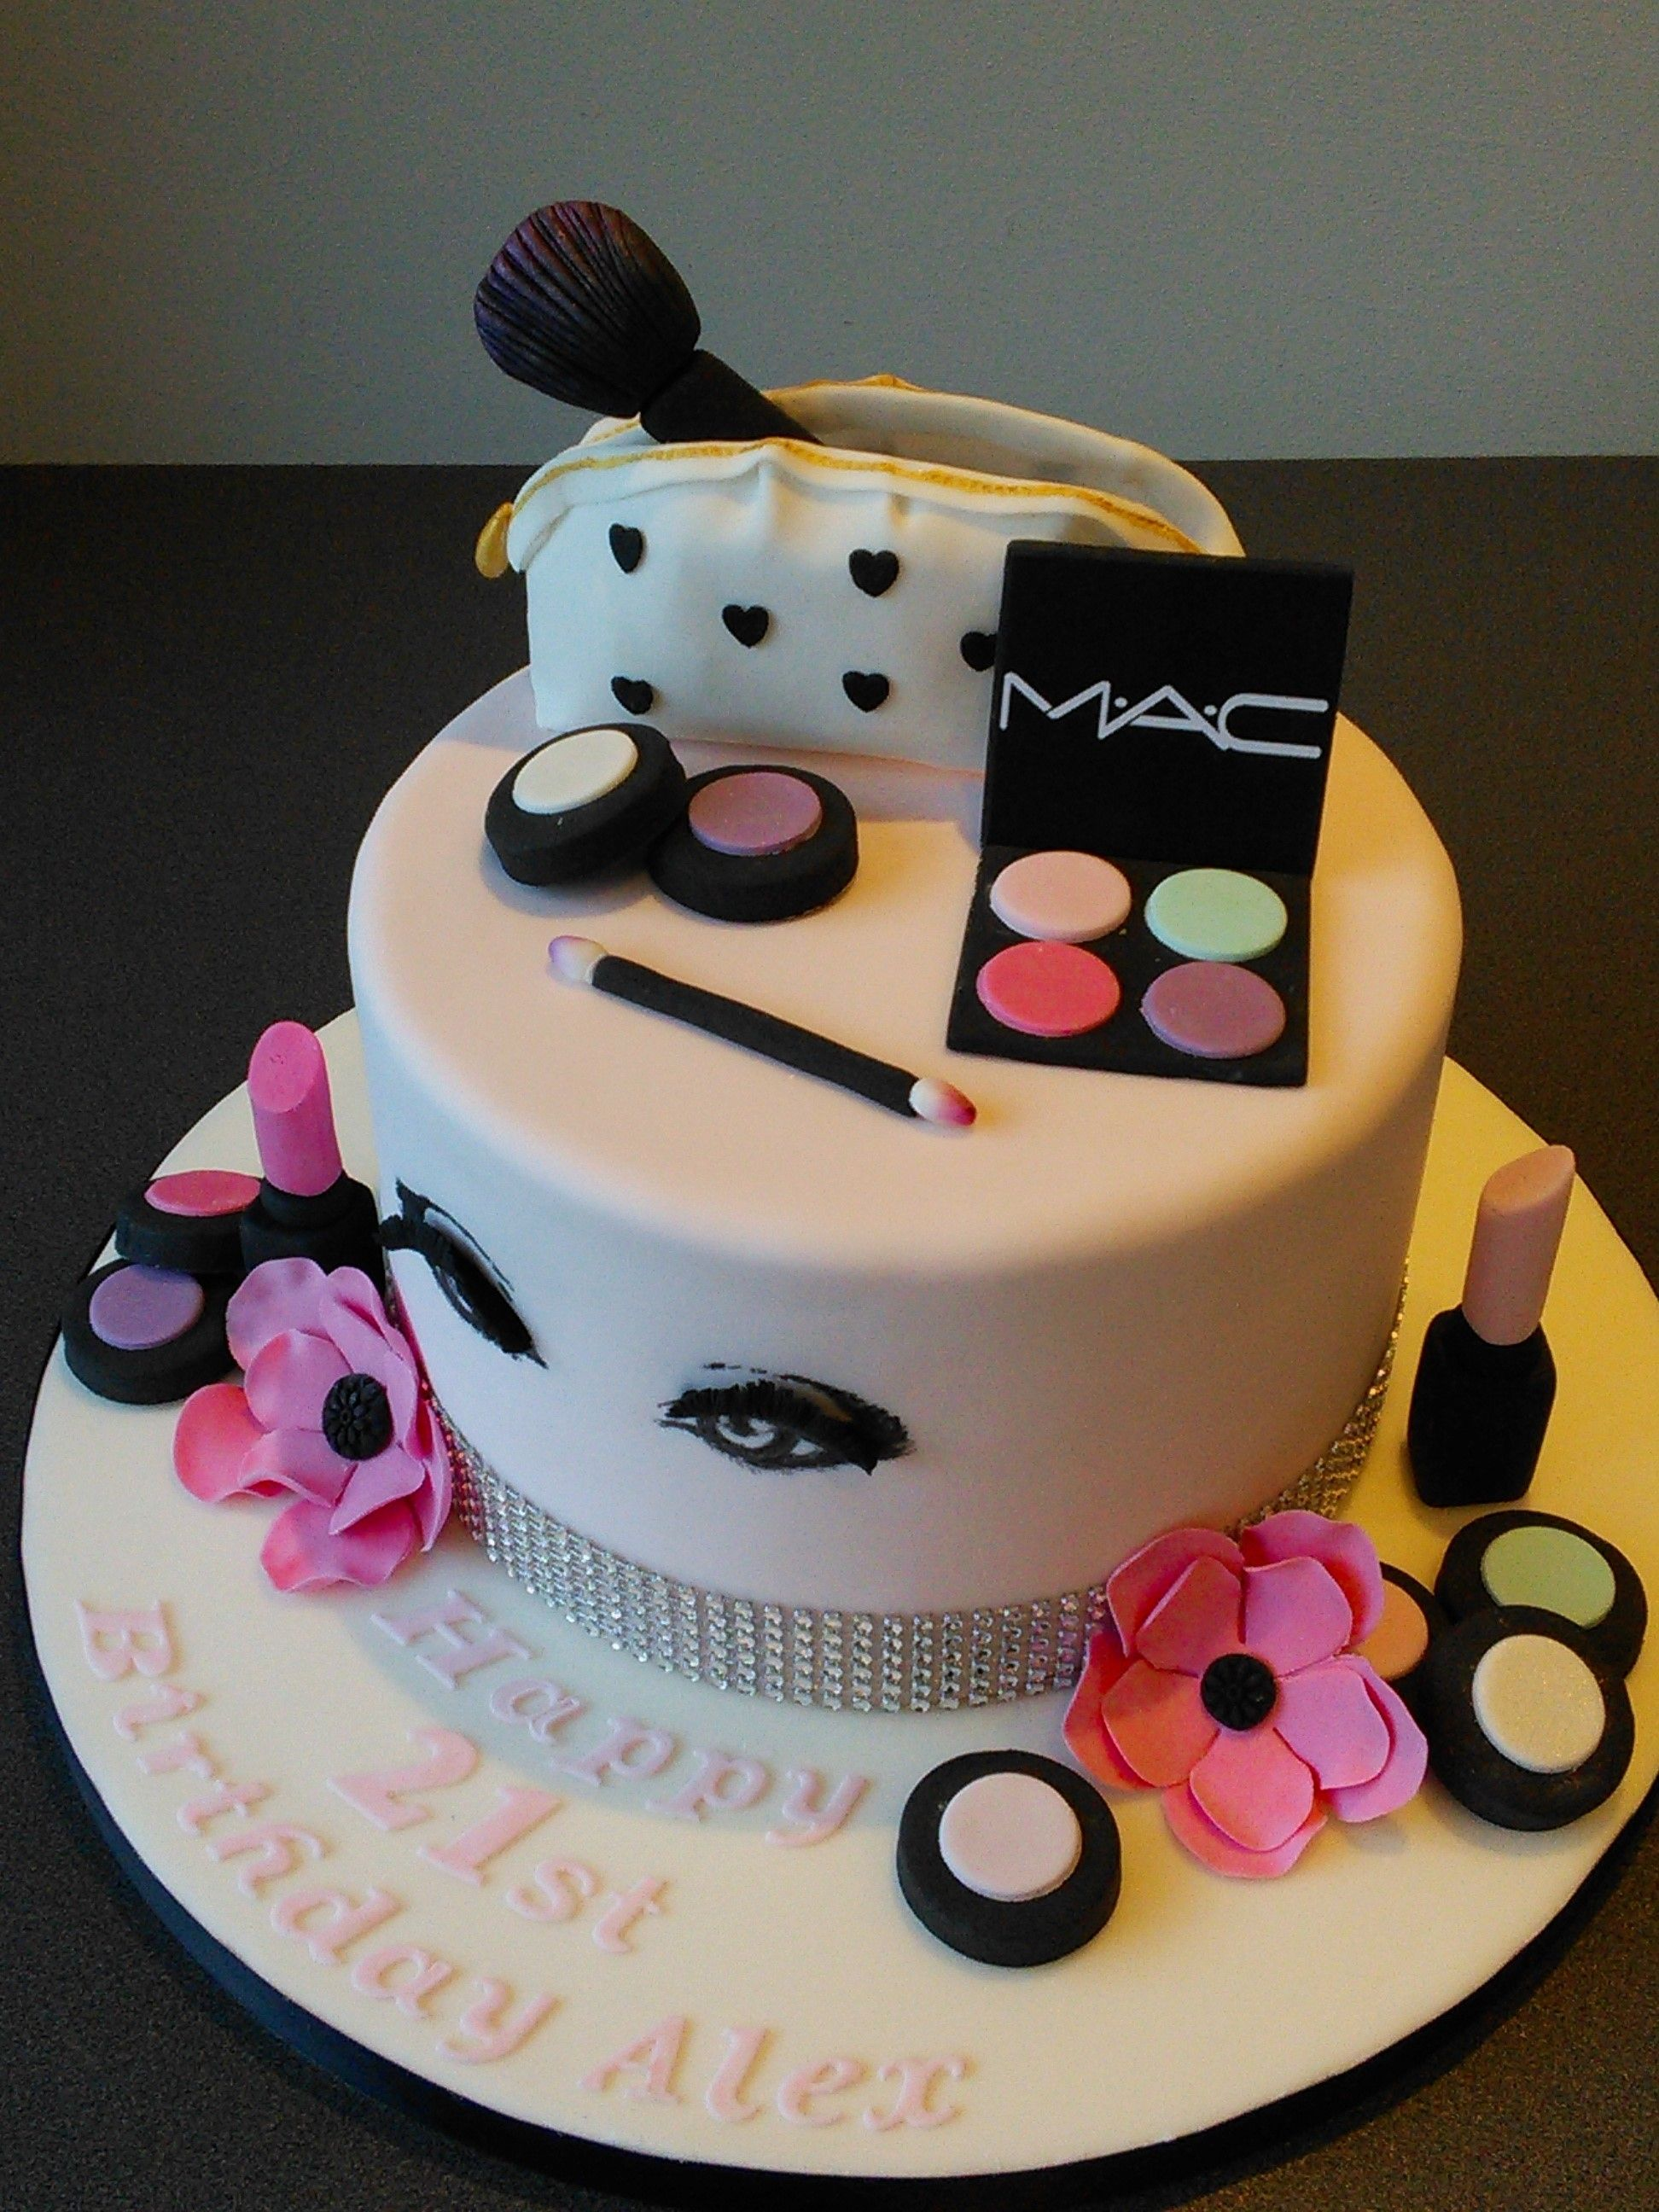 Mac Cosmetics 21st Birthday Cake Make Up Bag With Pink Flowers And